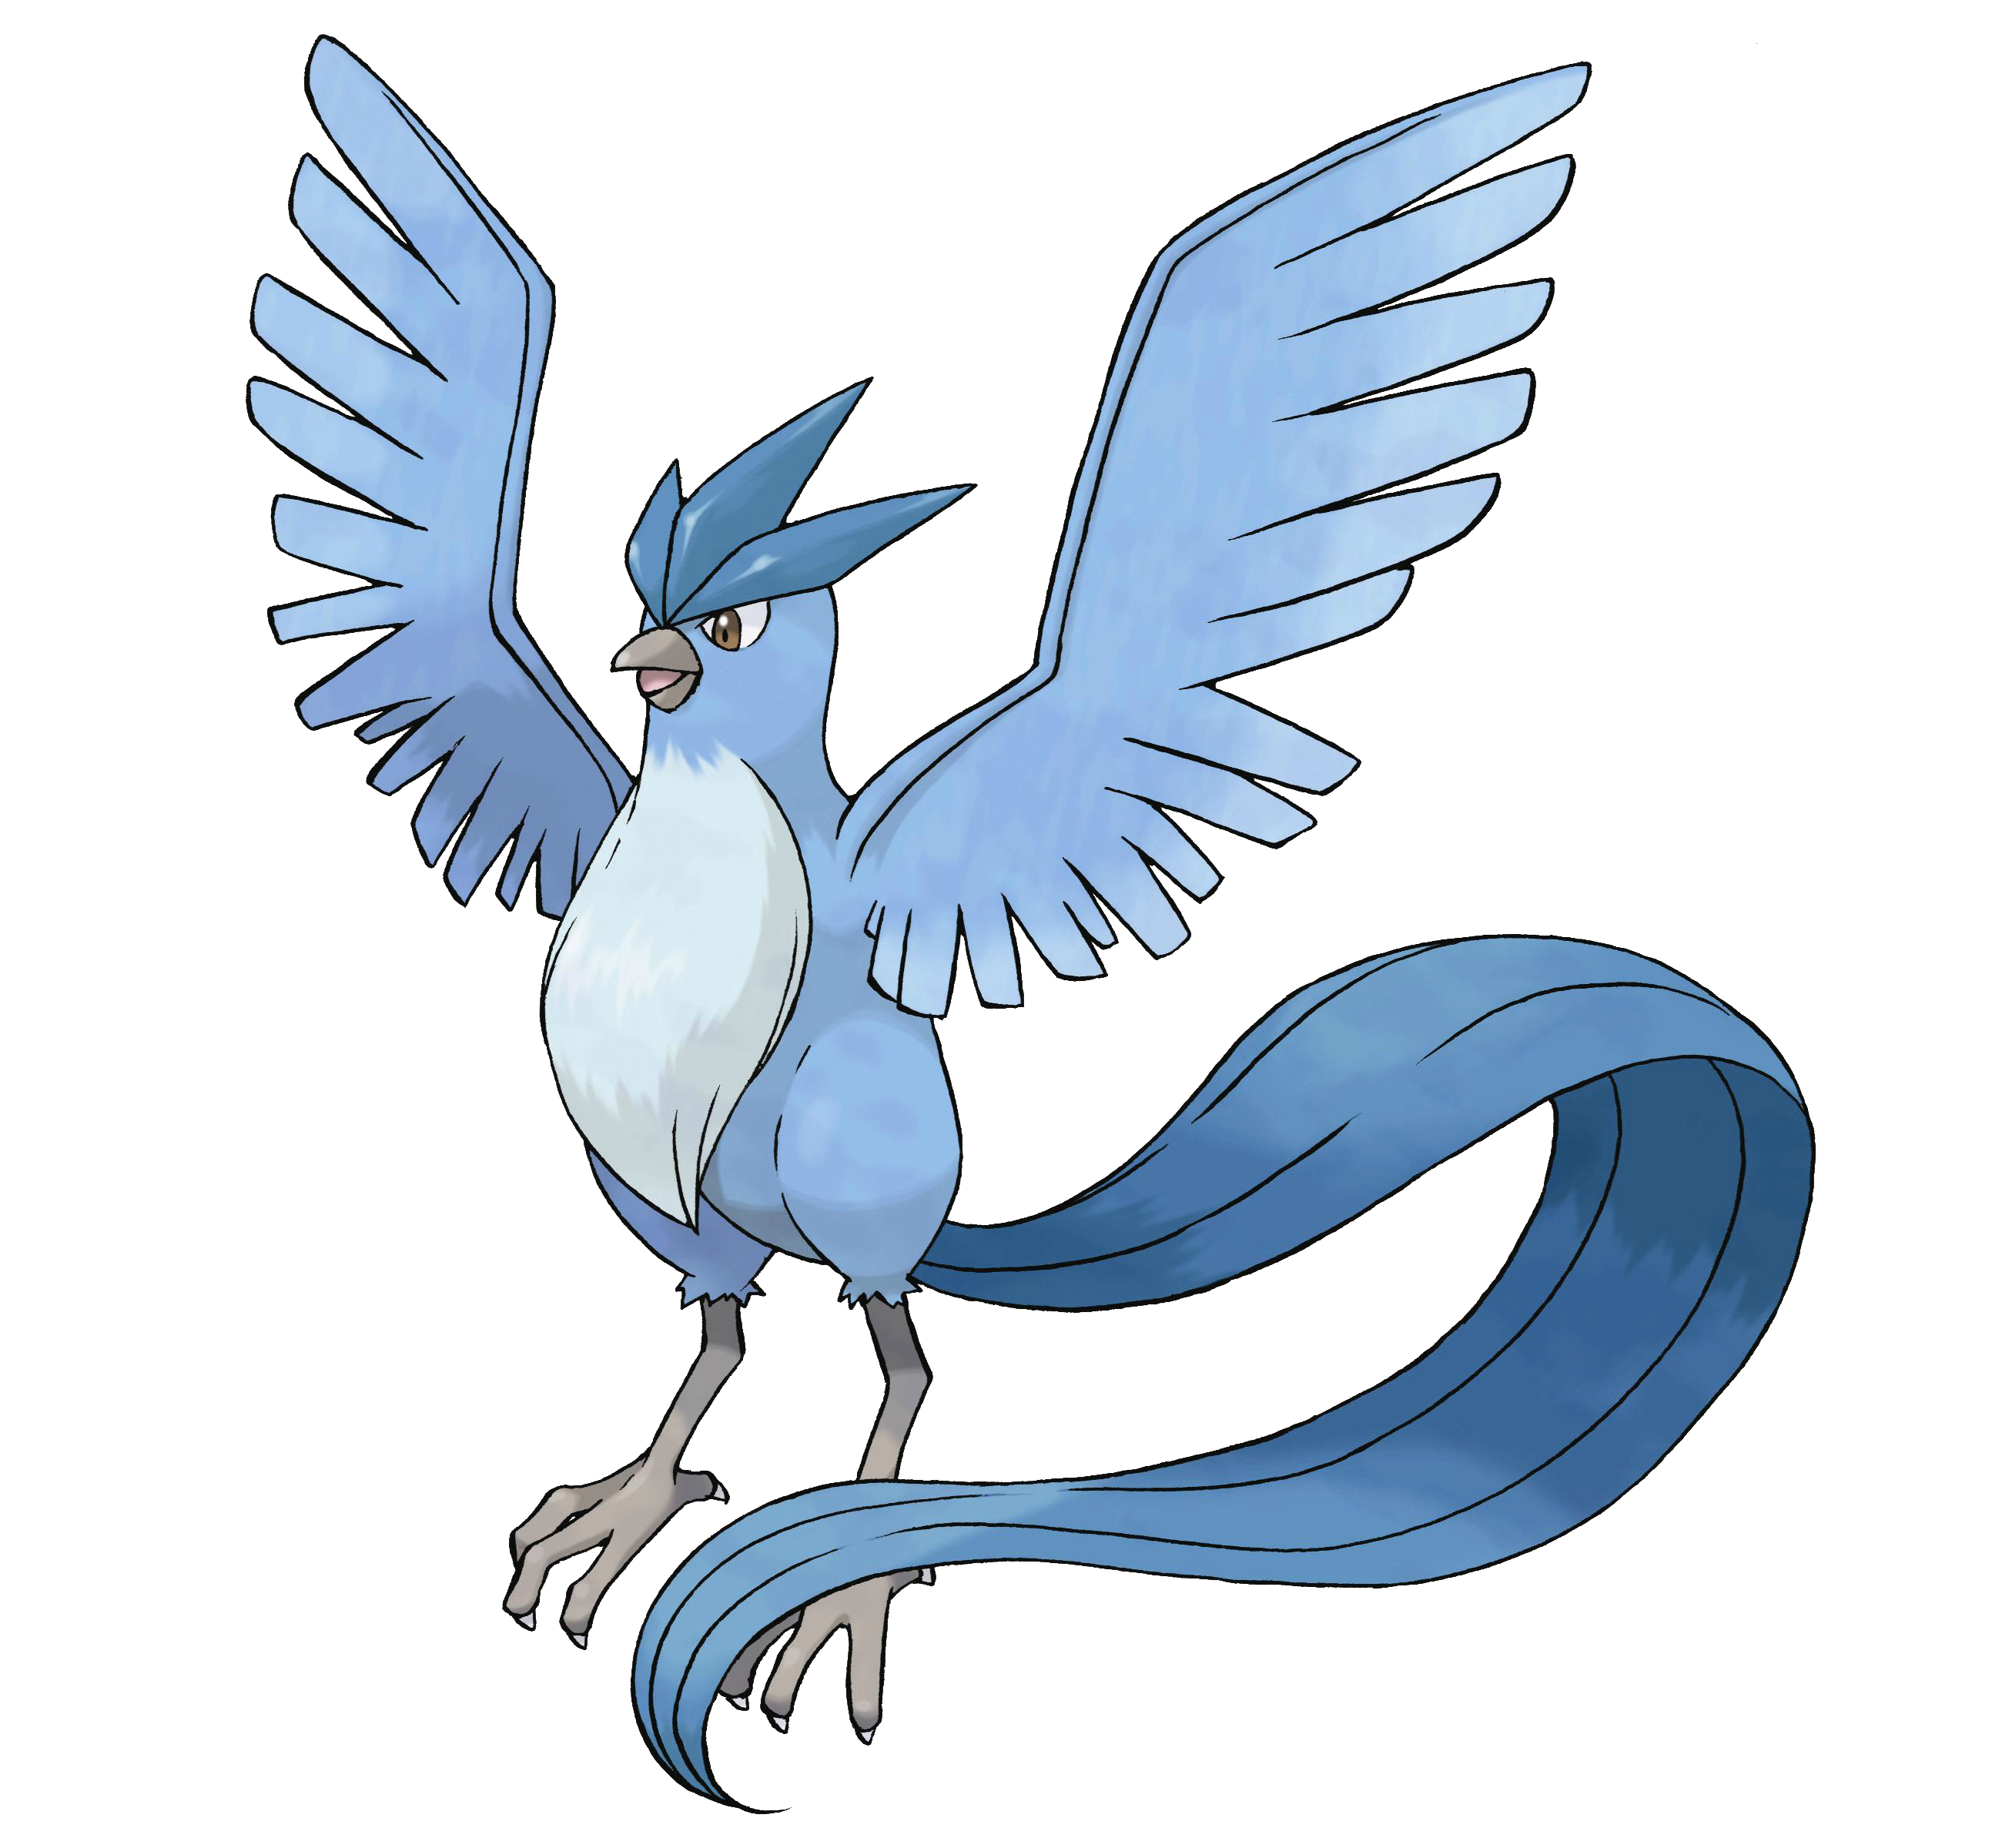 http://static3.wikia.nocookie.net/__cb20080908160131/es.pokemon/images/5/52/Articuno.png